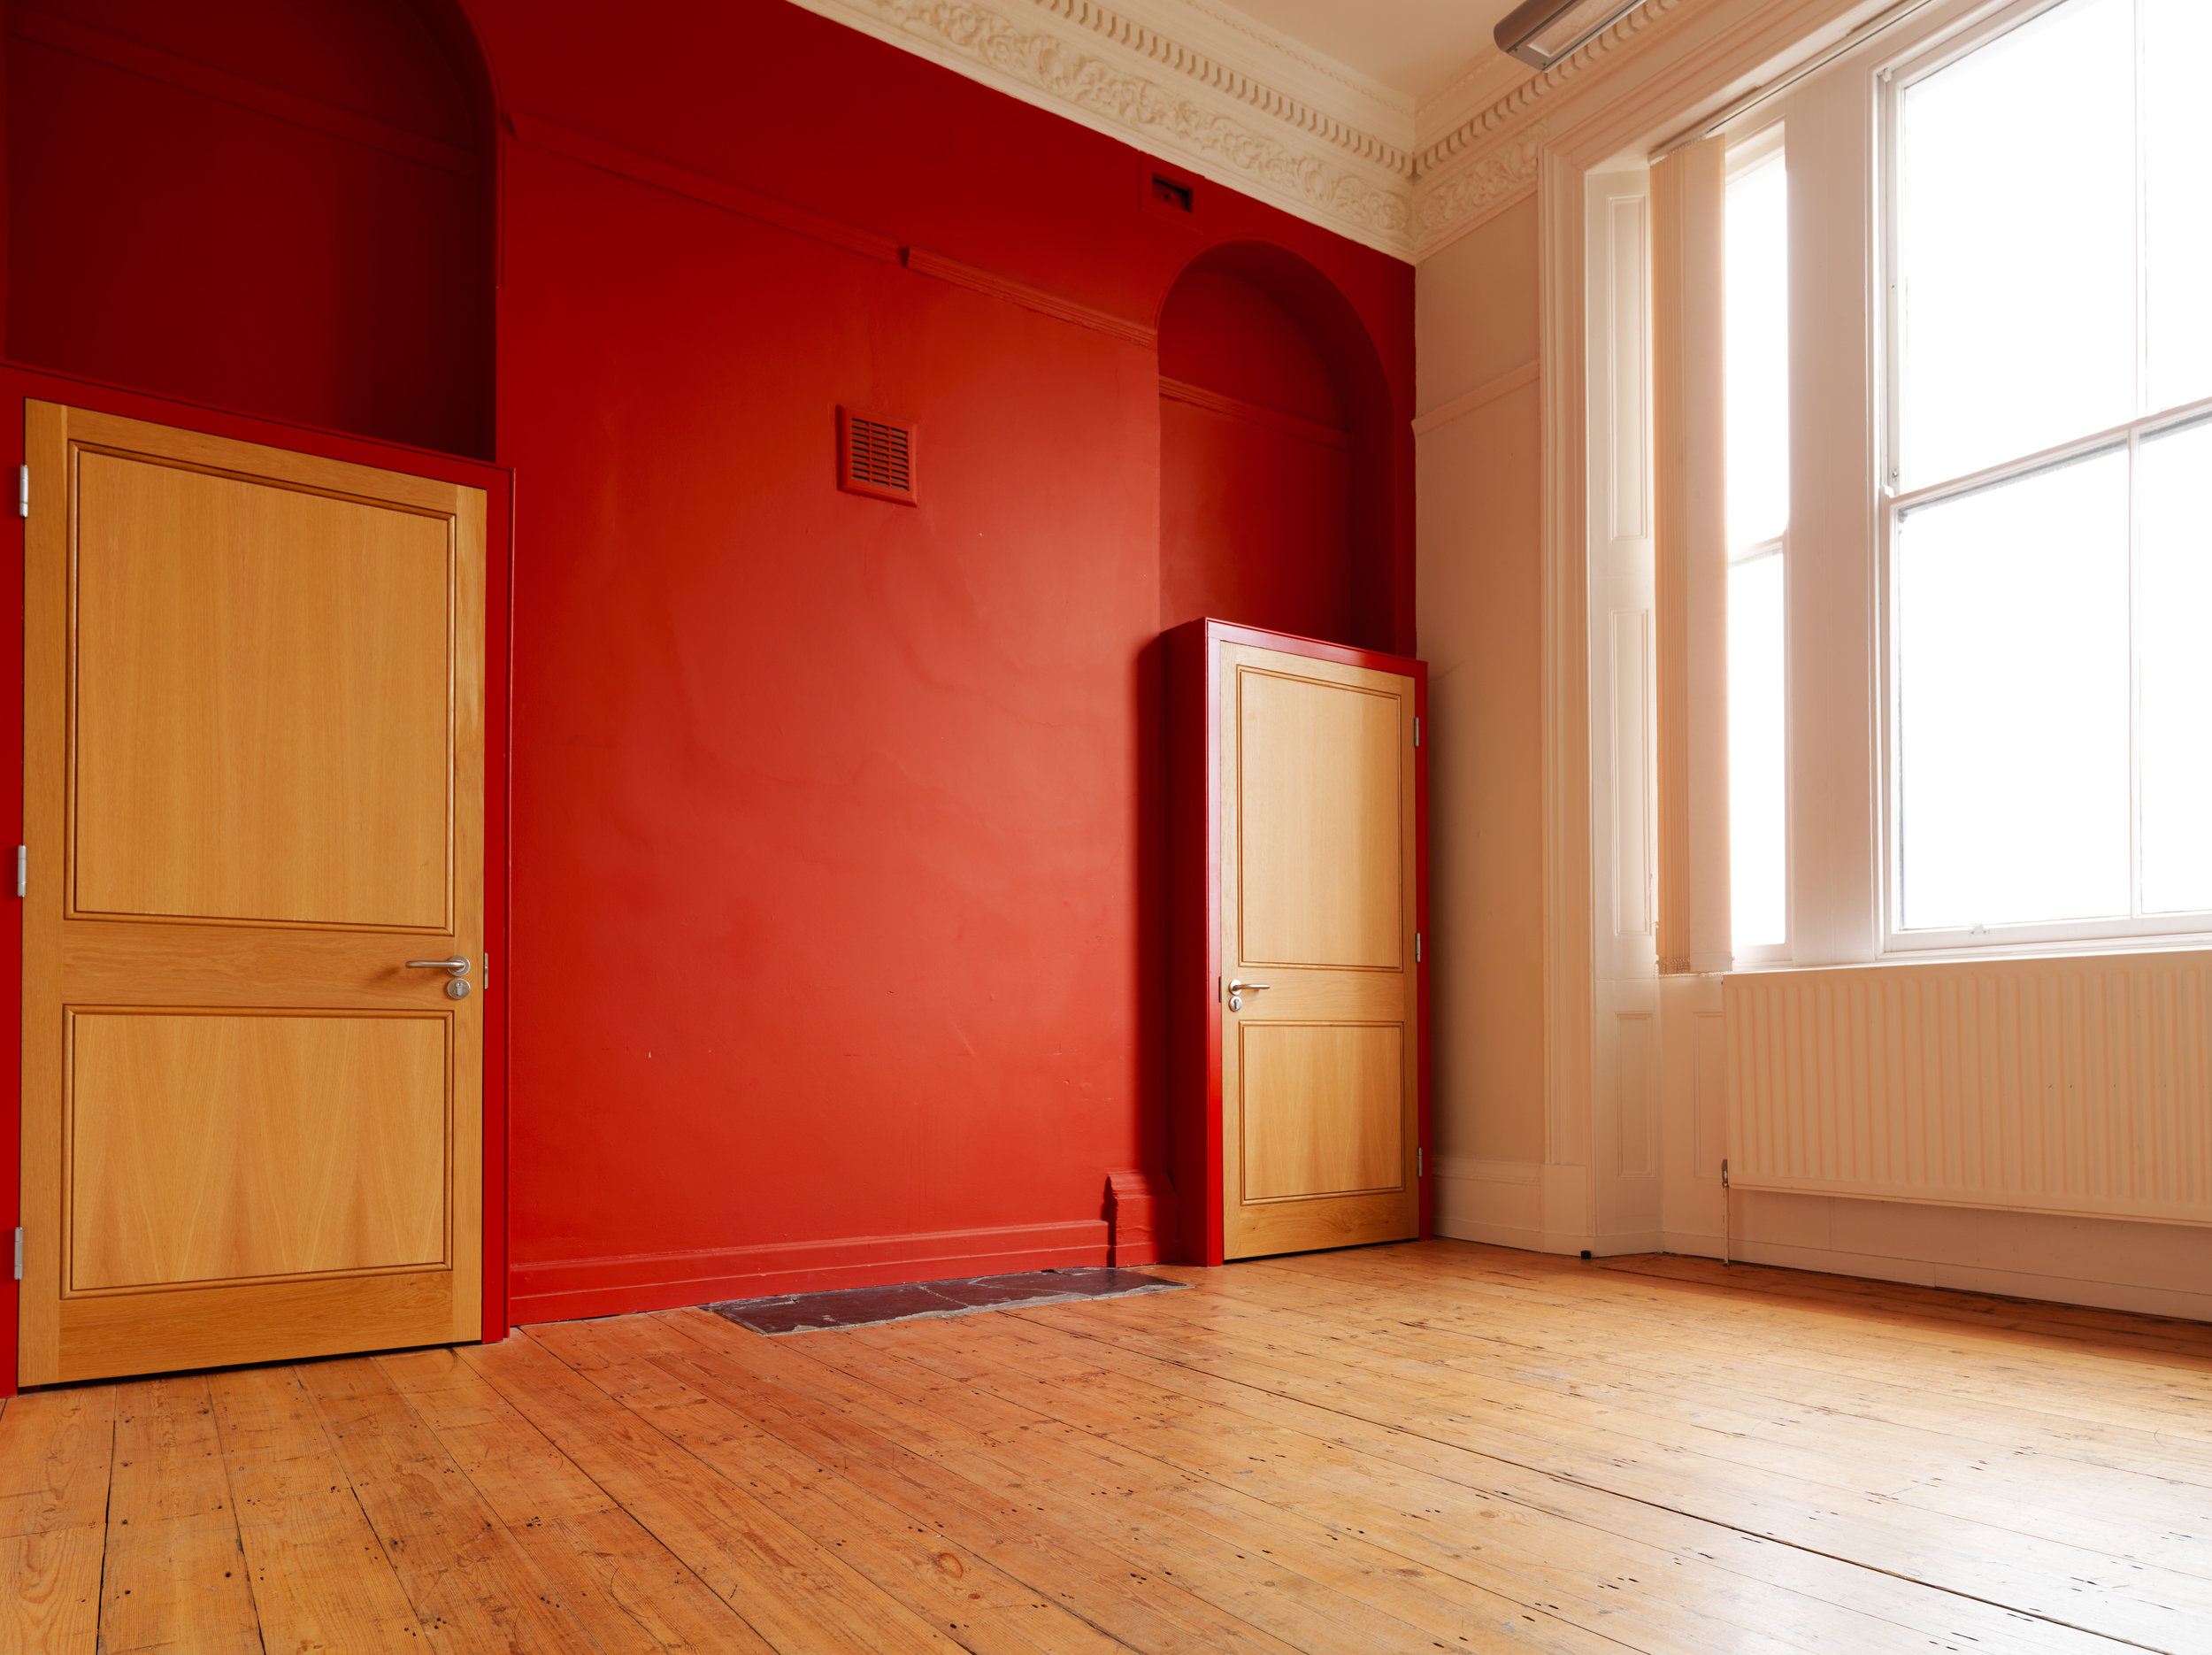 Rehearsal Space in Limehouse, East London (Red Room)